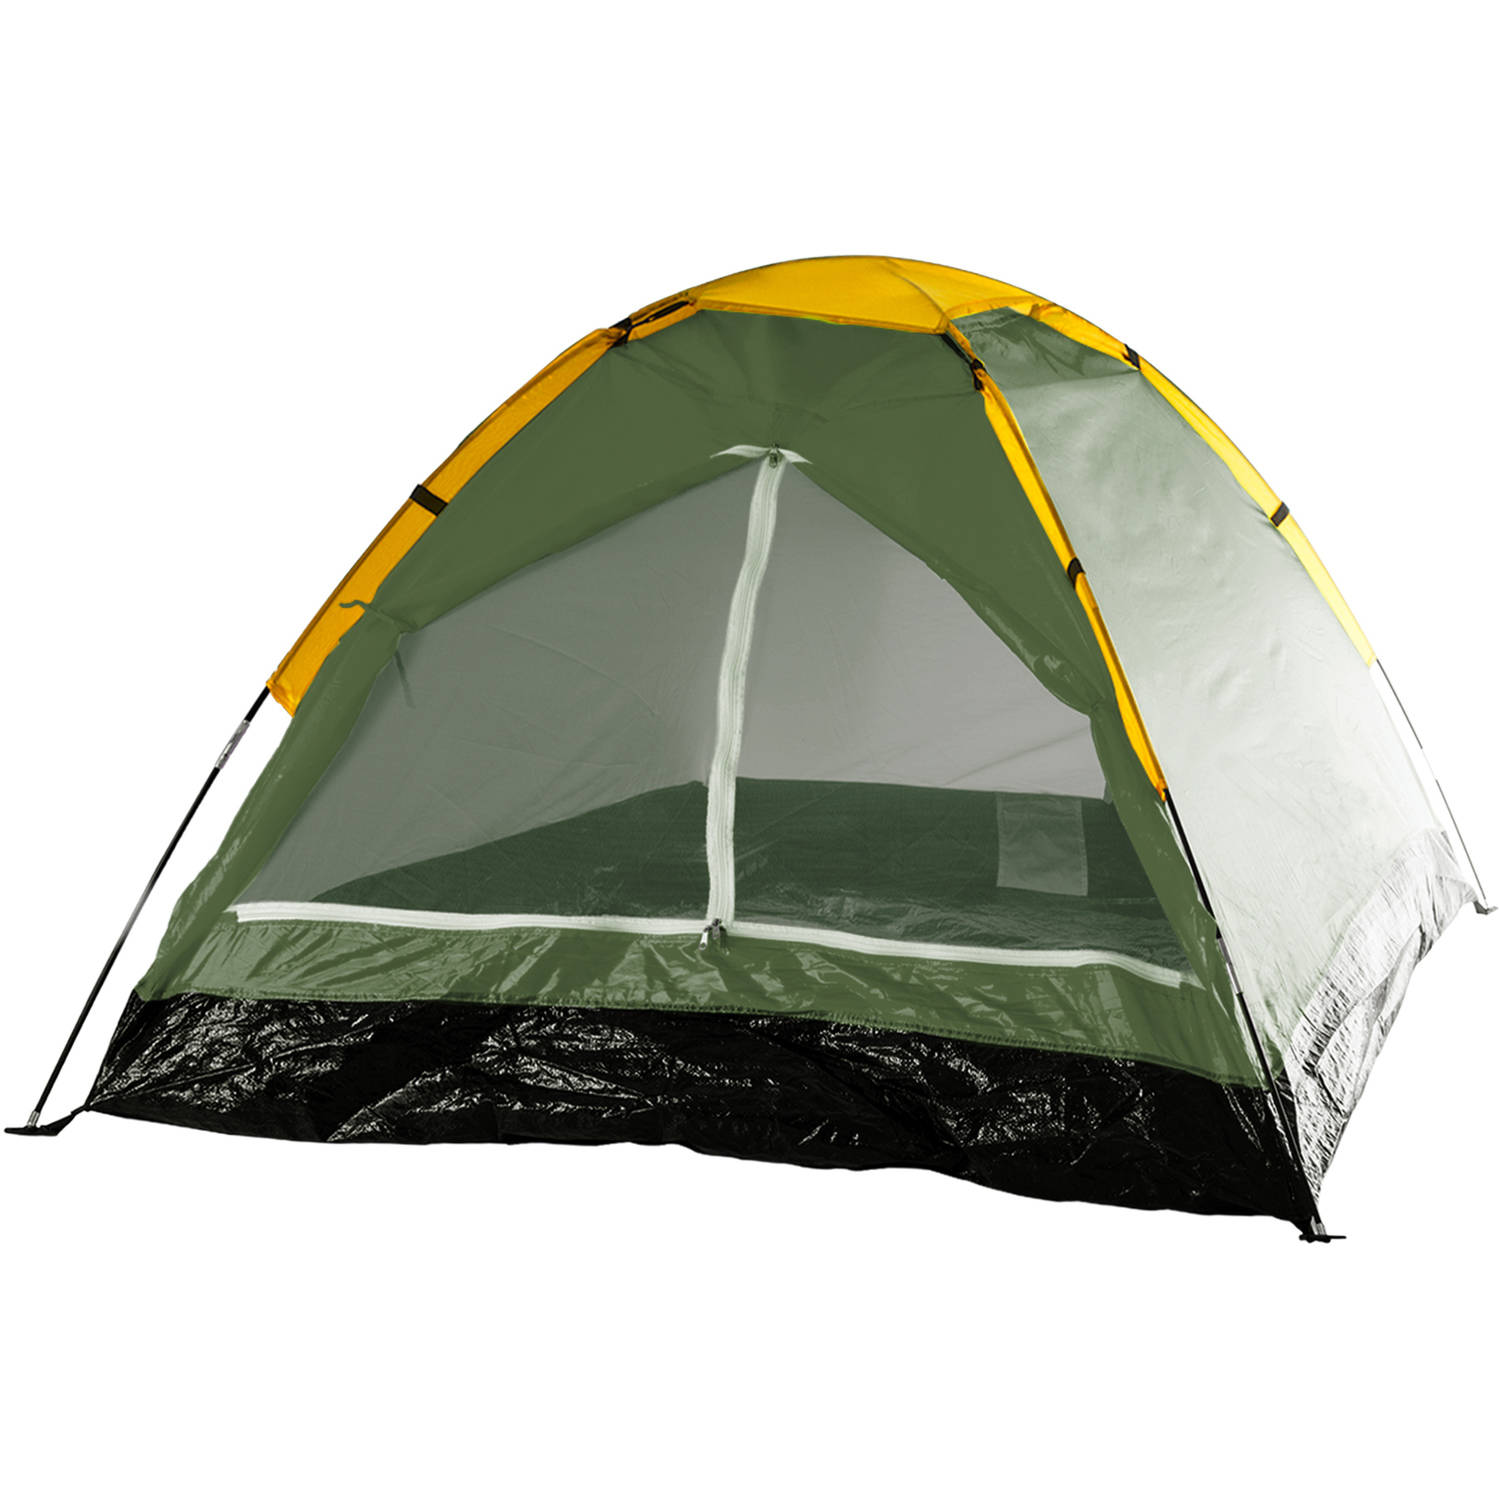 Wakeman Outdoors Happy Camper 2-Person Tent, Leafy Green